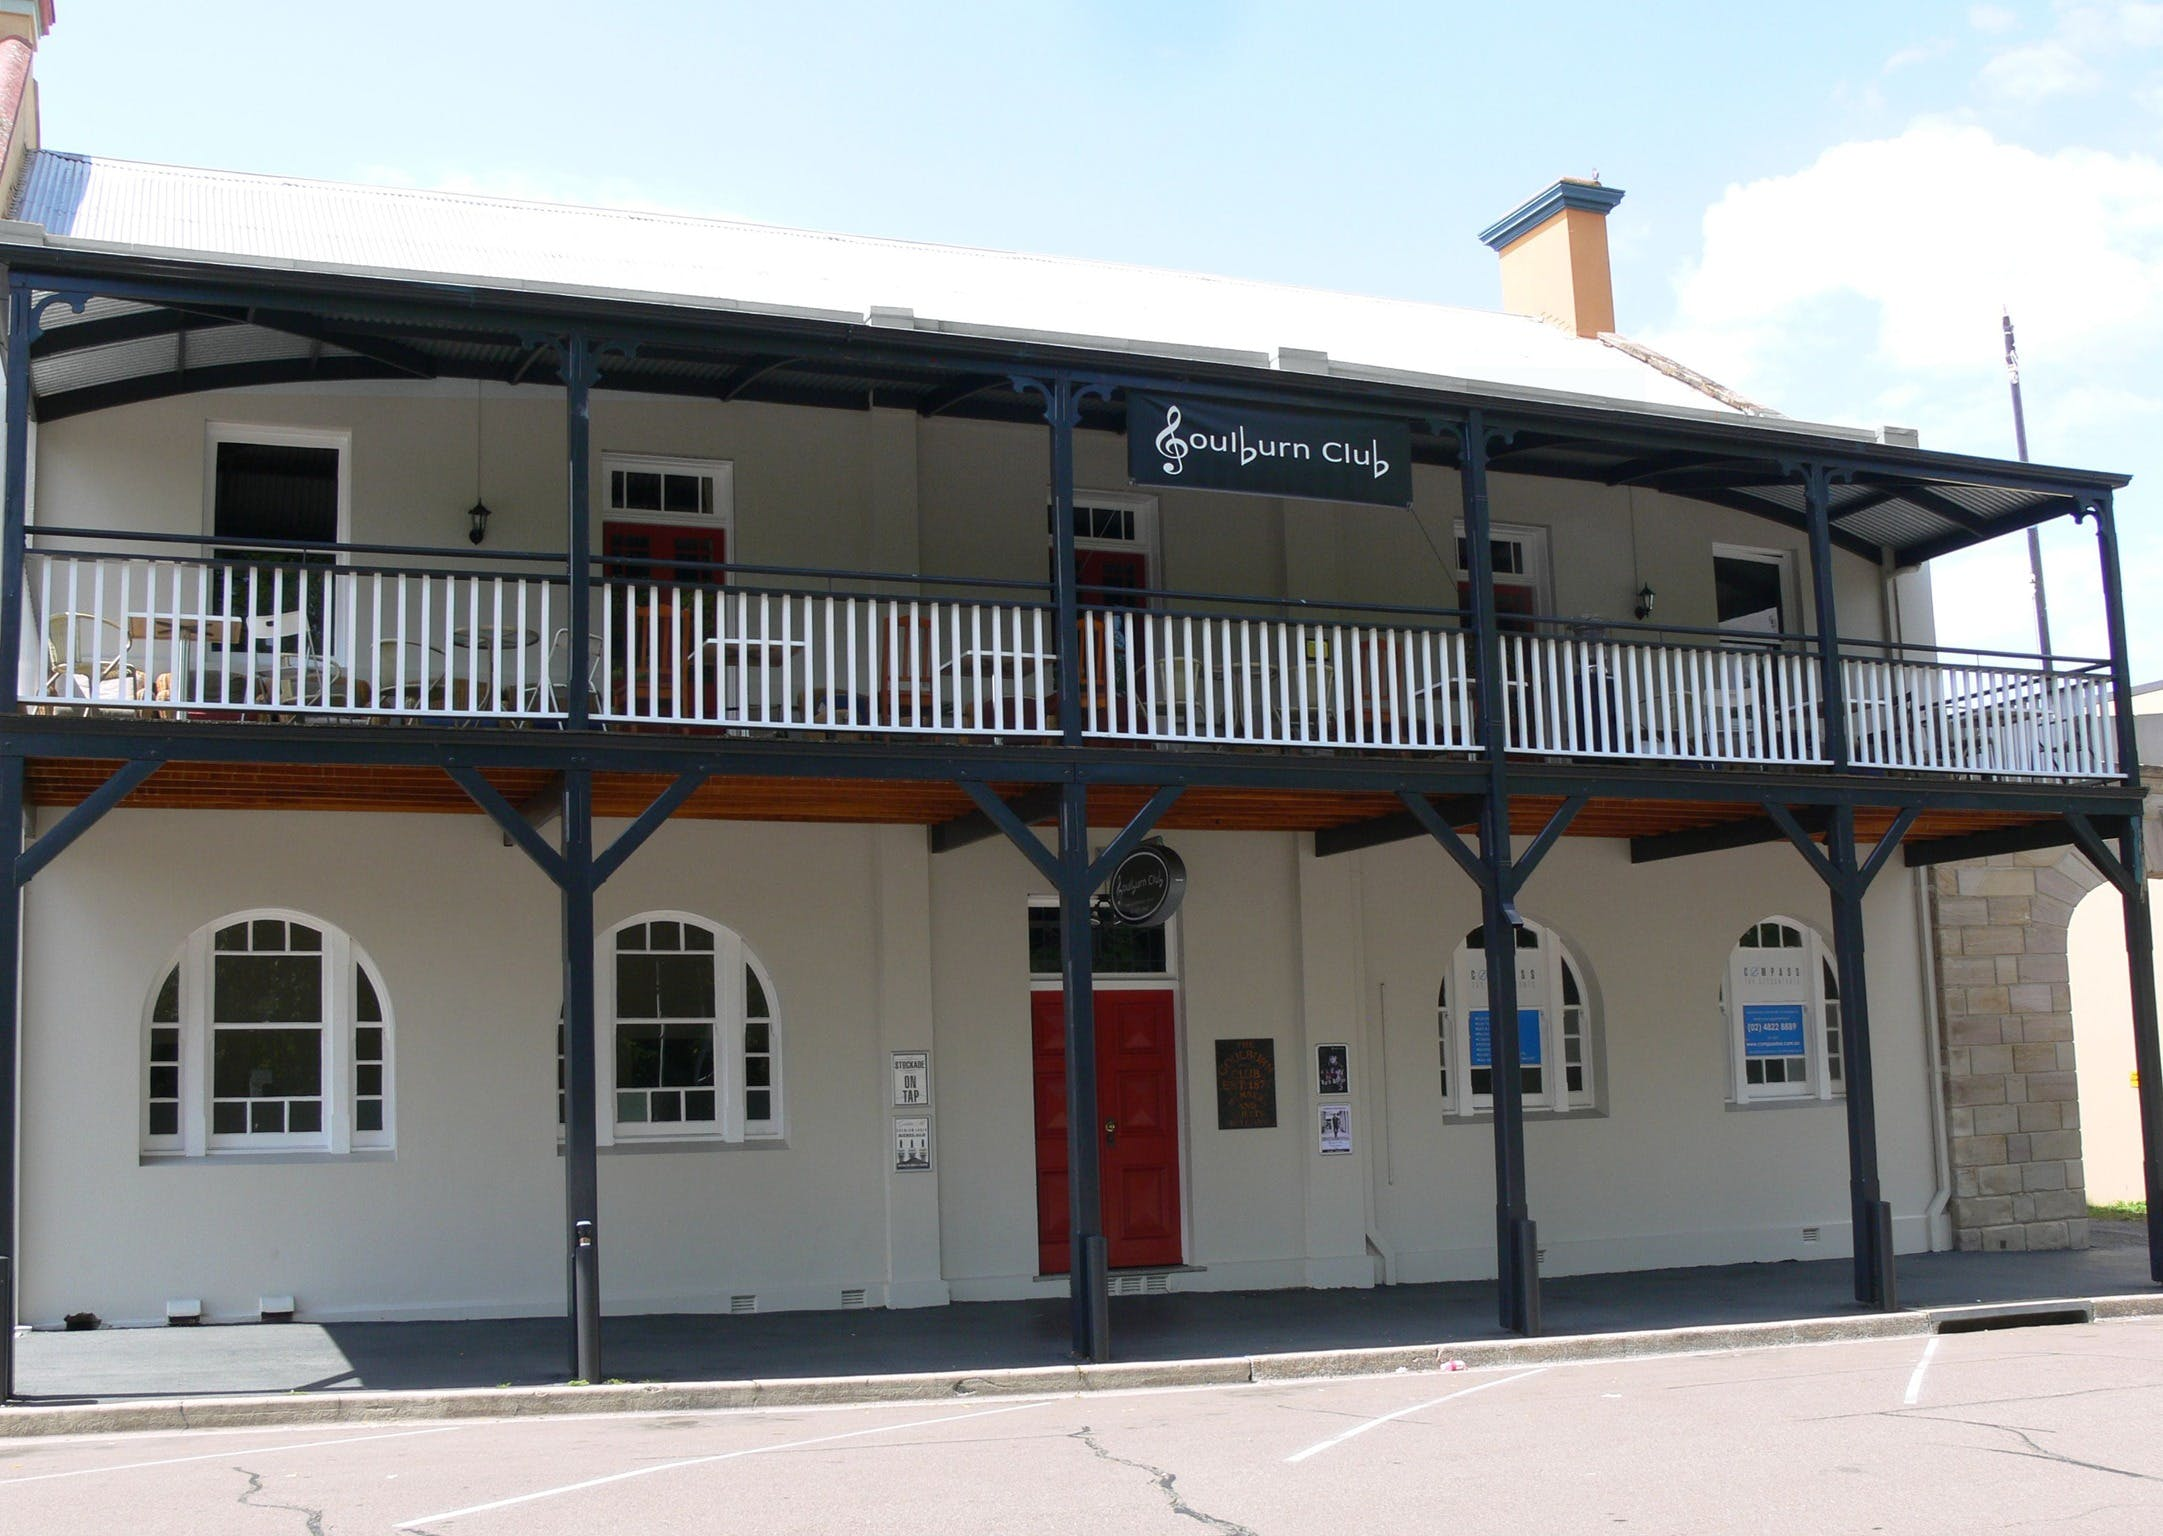 Open Mic Night at the Goulburn Club - Accommodation Mount Tamborine